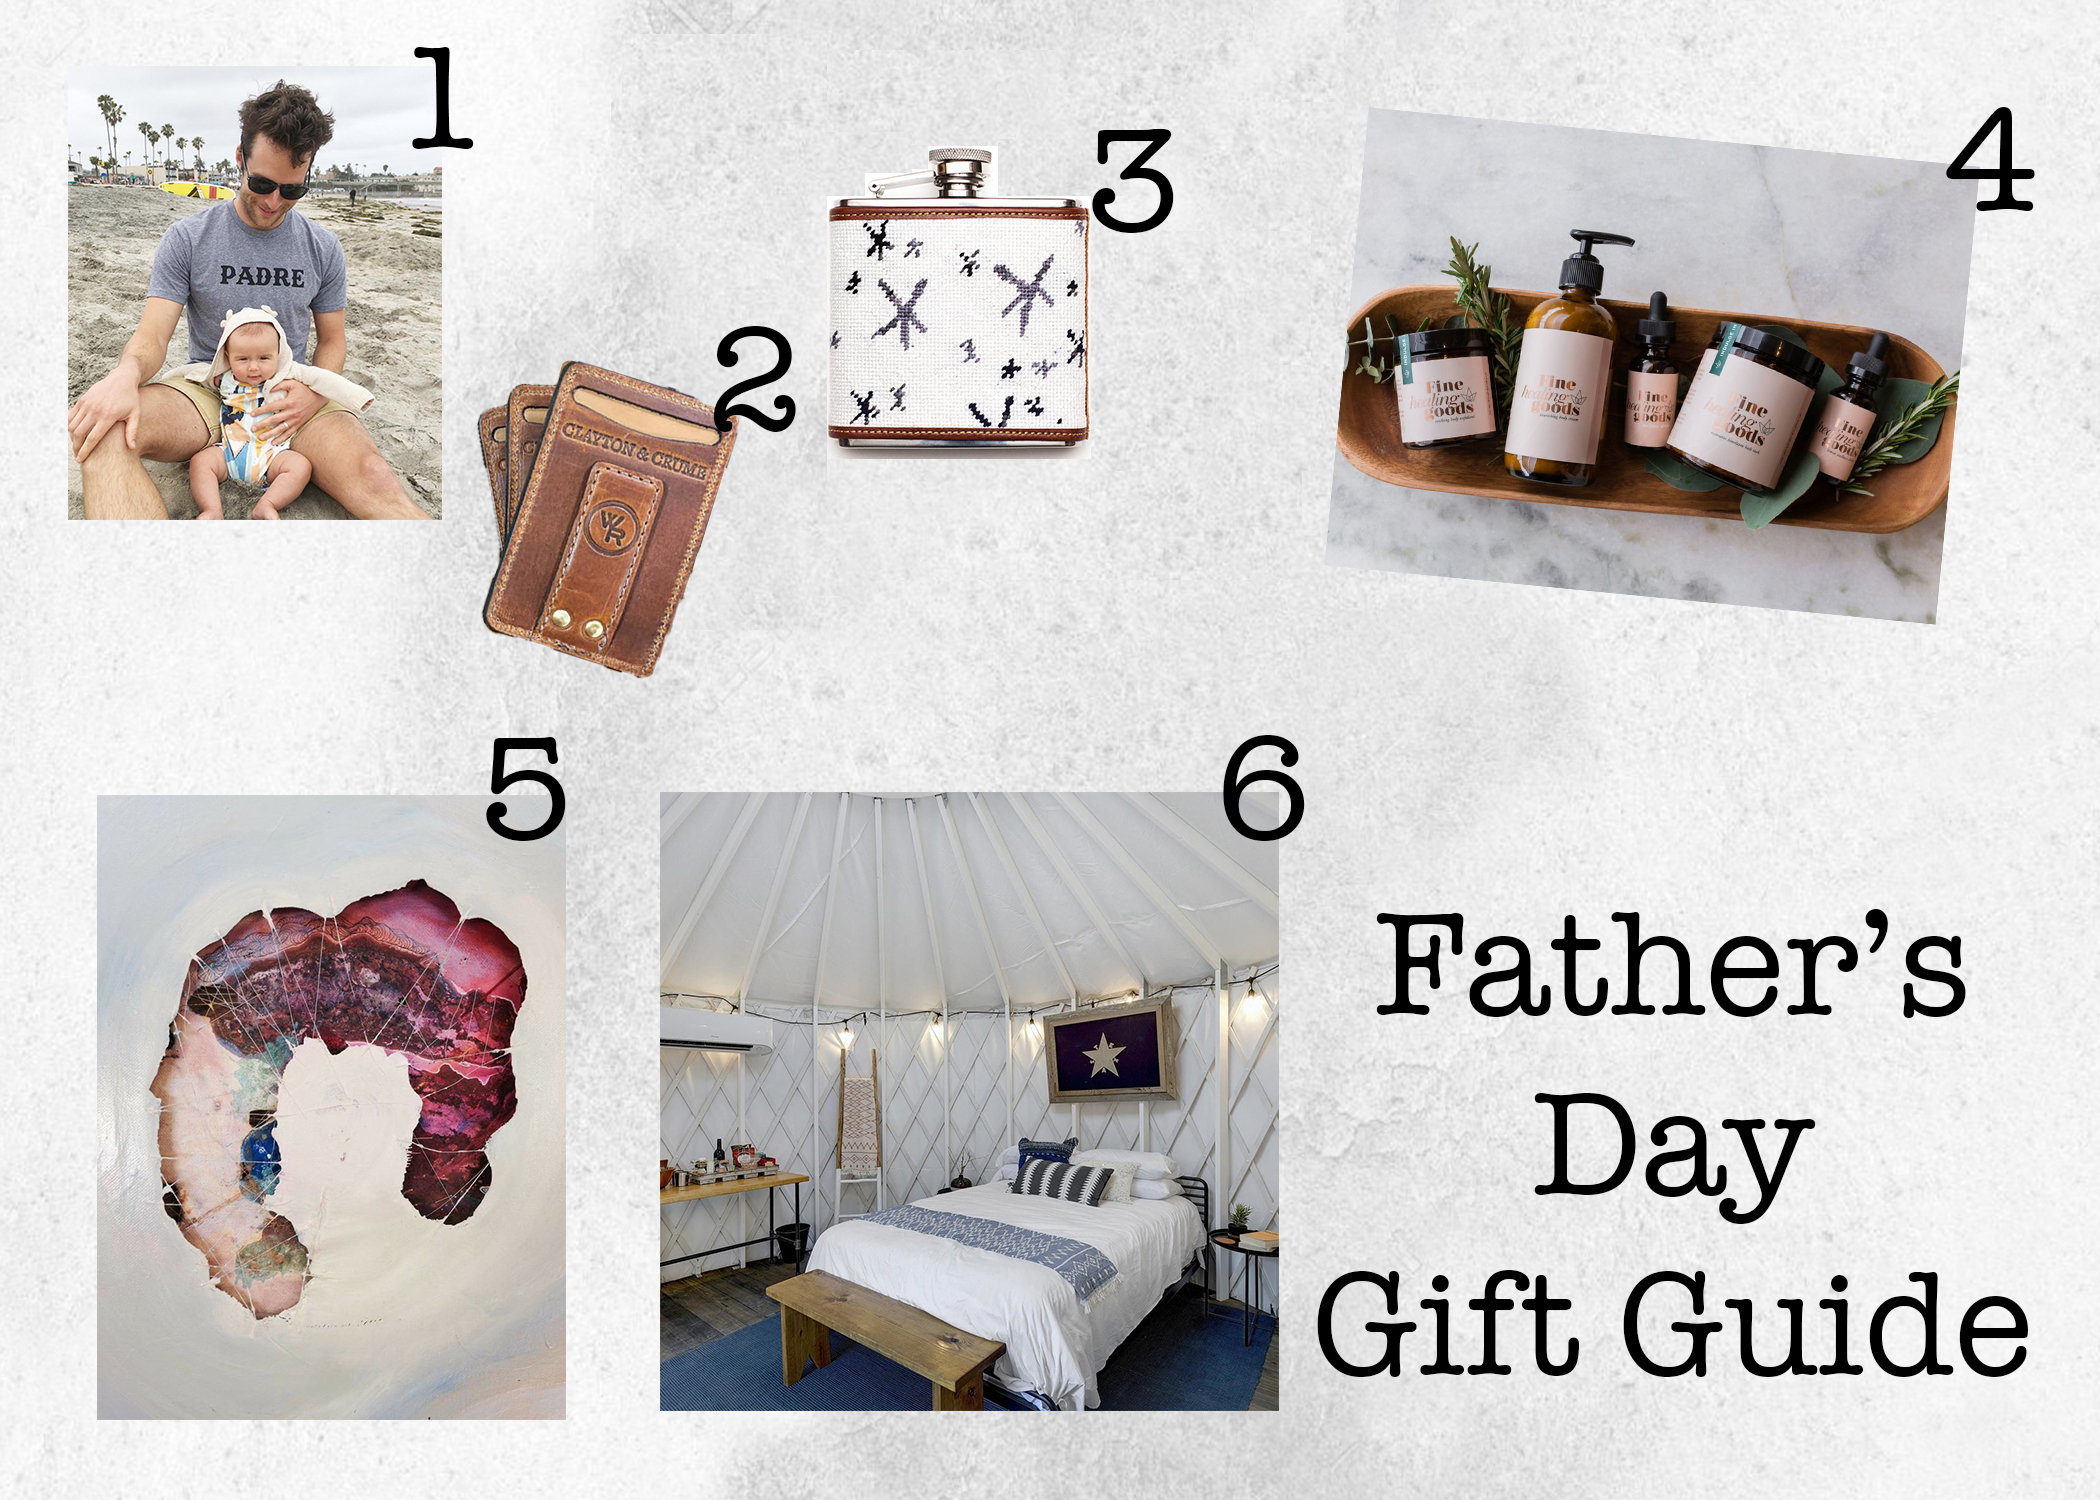 Fathers Day gift guide.jpg